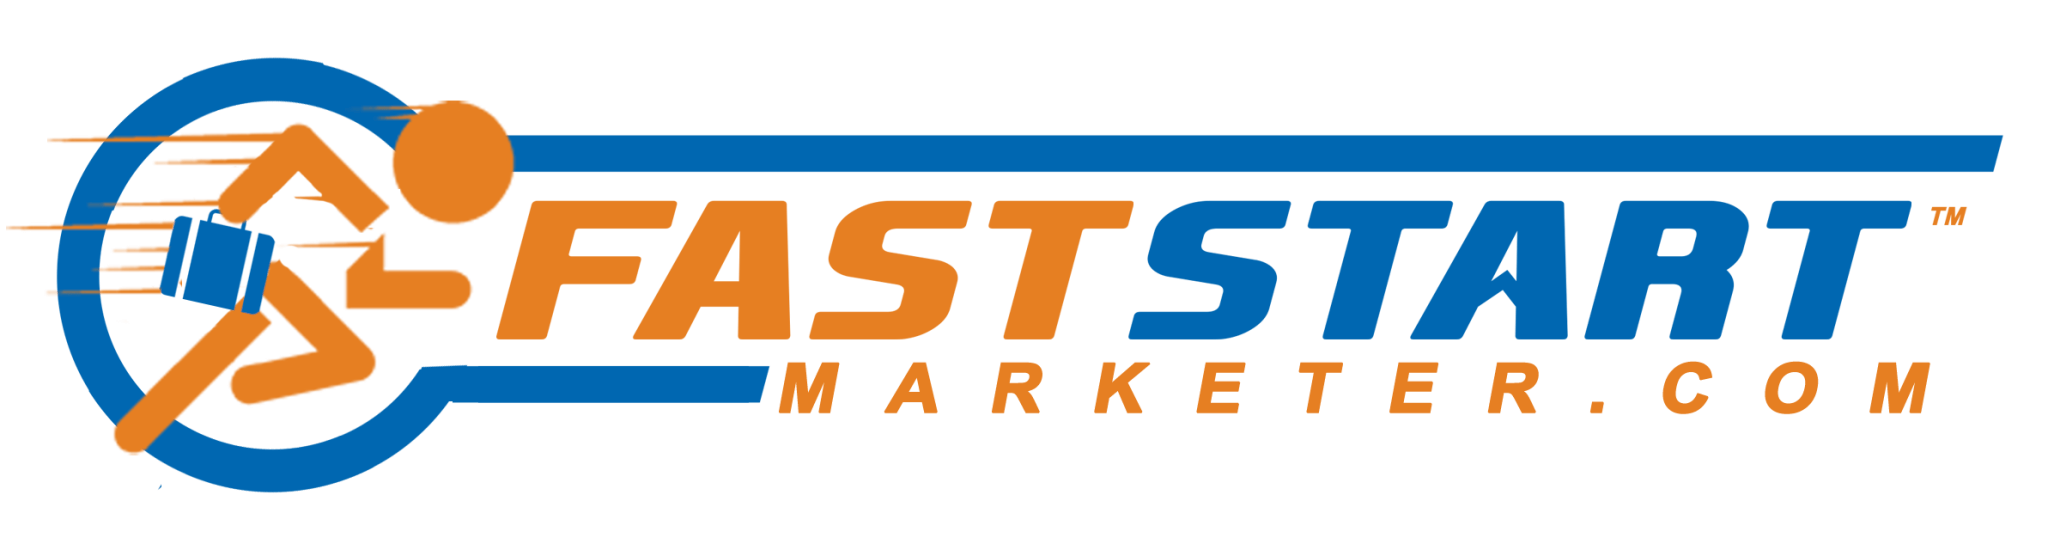 fast-start-marketer-logo-